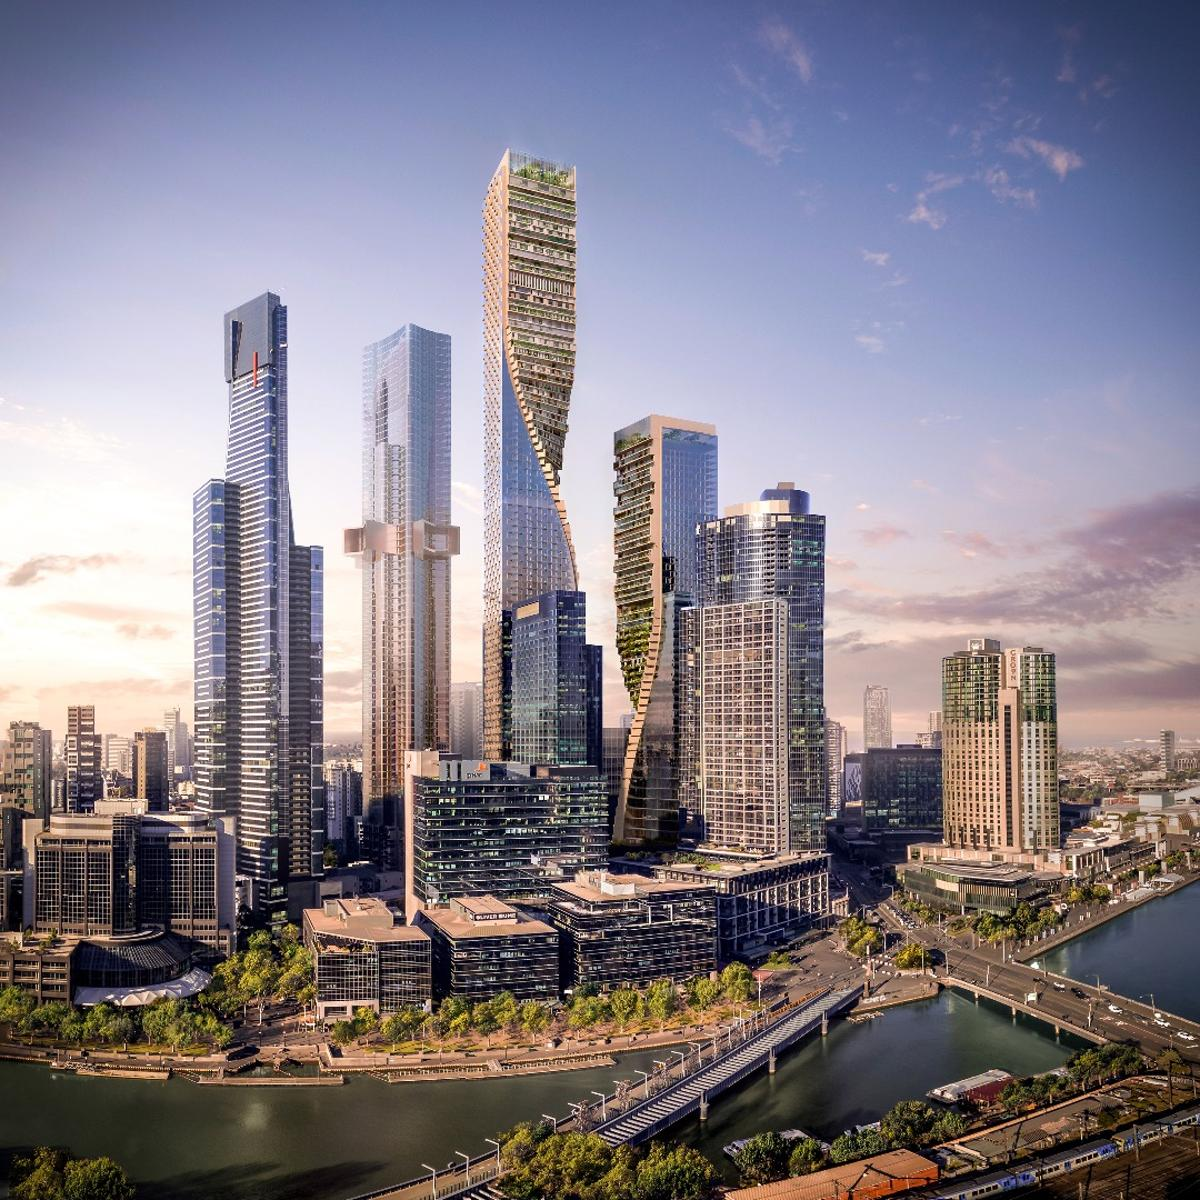 TheGreen Spine'staller buildingwill rise to a height of356.2 m (1,168 ft), while the smaller will be 252.2 m (827 ft)-tall